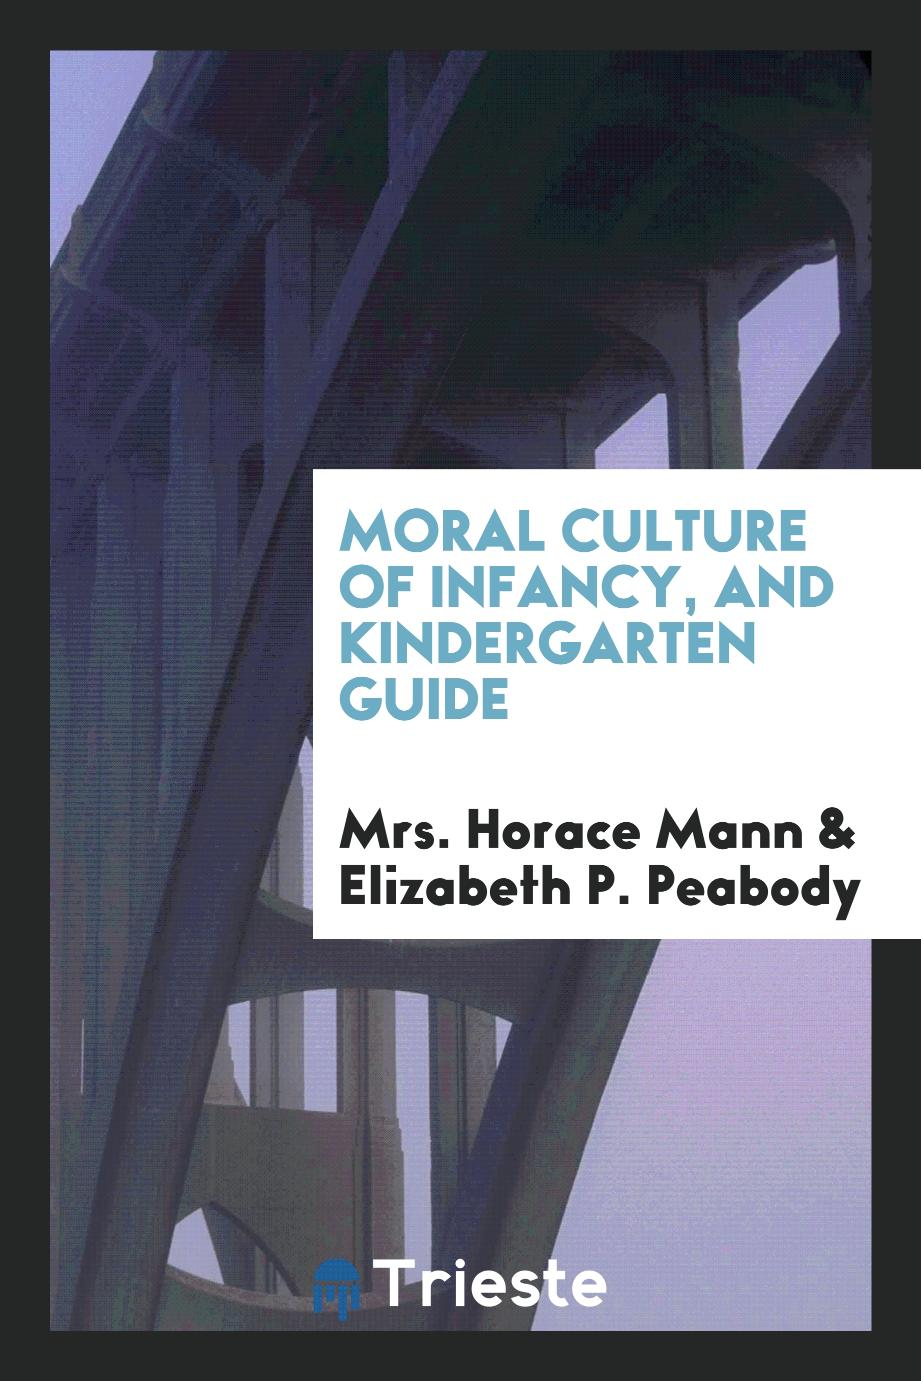 Moral Culture of Infancy, and Kindergarten Guide